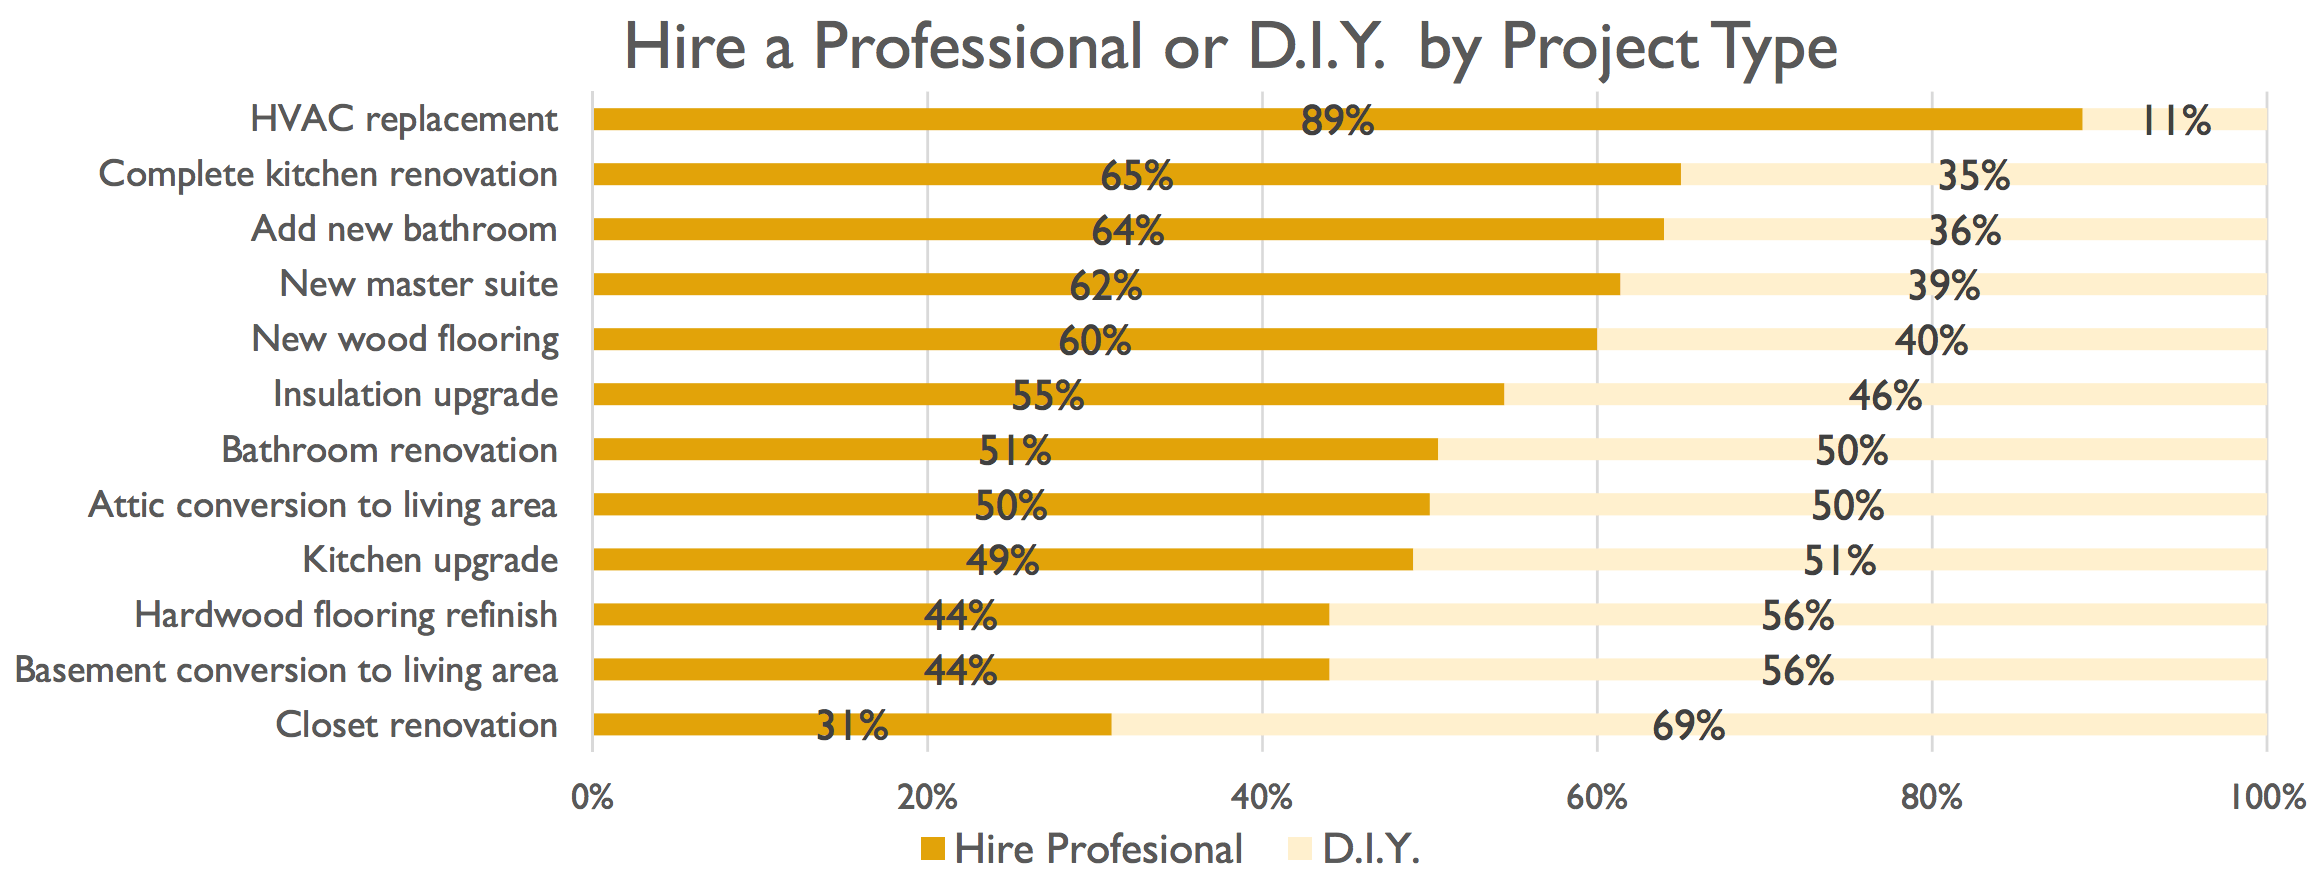 A survey showing how home improvement projects were completed.